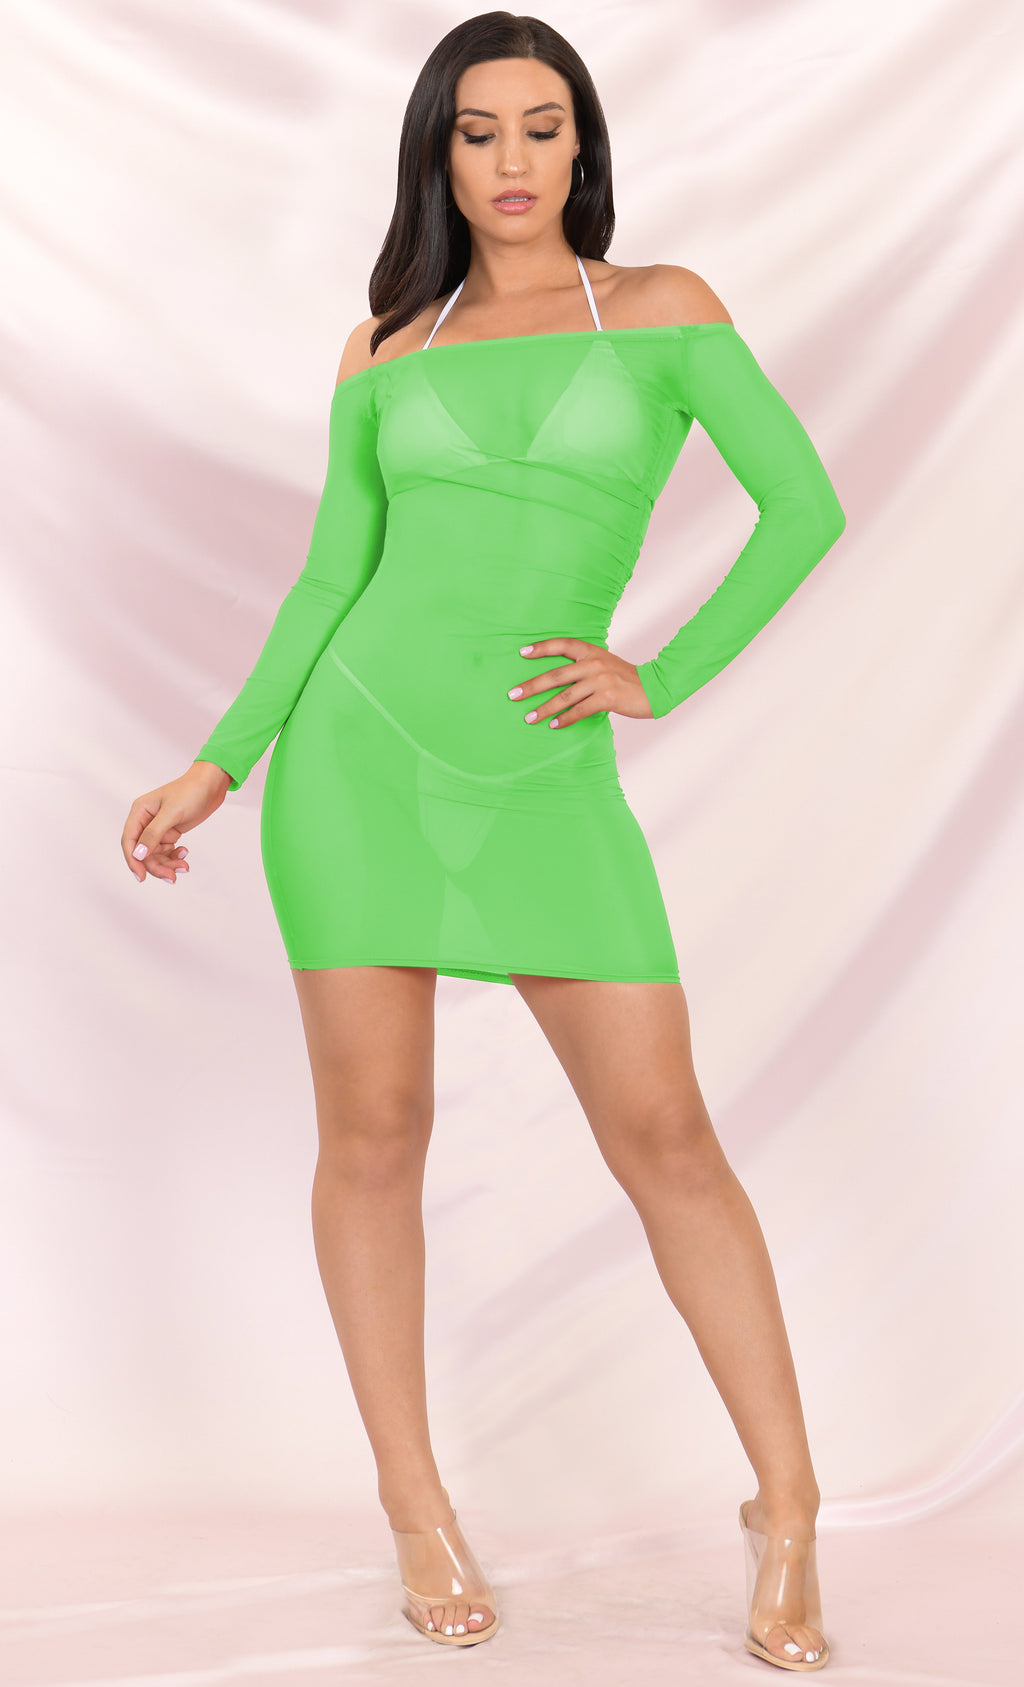 Go Crazy Neon Green Sheer Mesh Long Sleeve Off The Shoulder Side Ruched Bodycon Mini Dress Beach Cover Up - 2 Colors Available